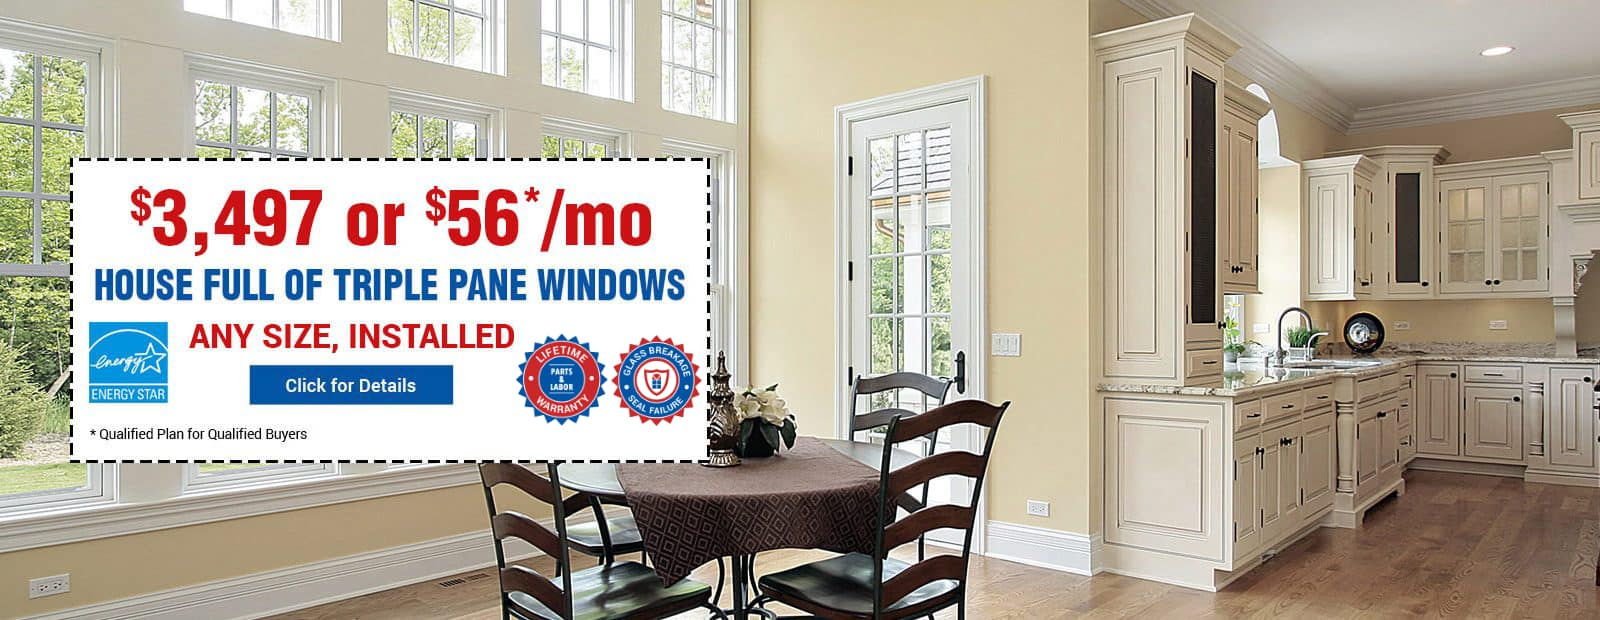 Triple Pane Energy Star Windows